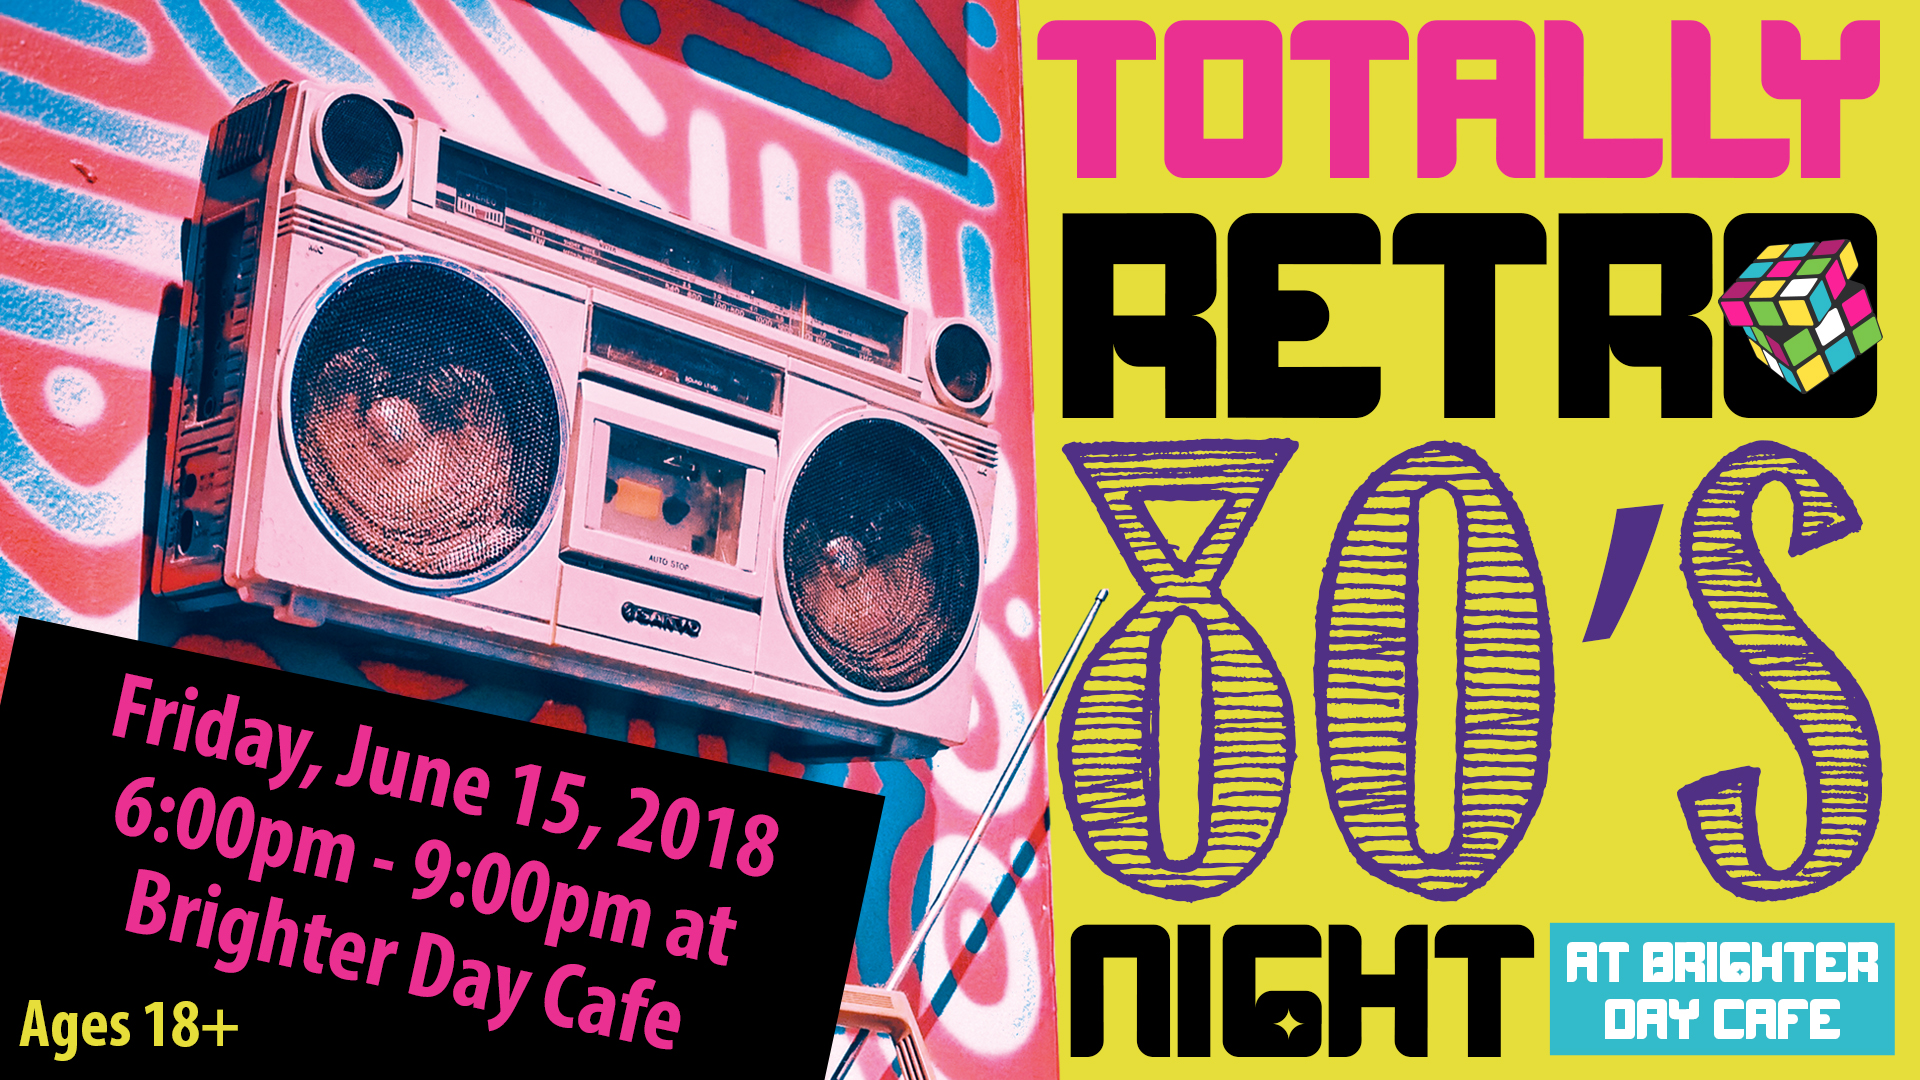 Totally Retro 80's Night at Brighter Day Cafe